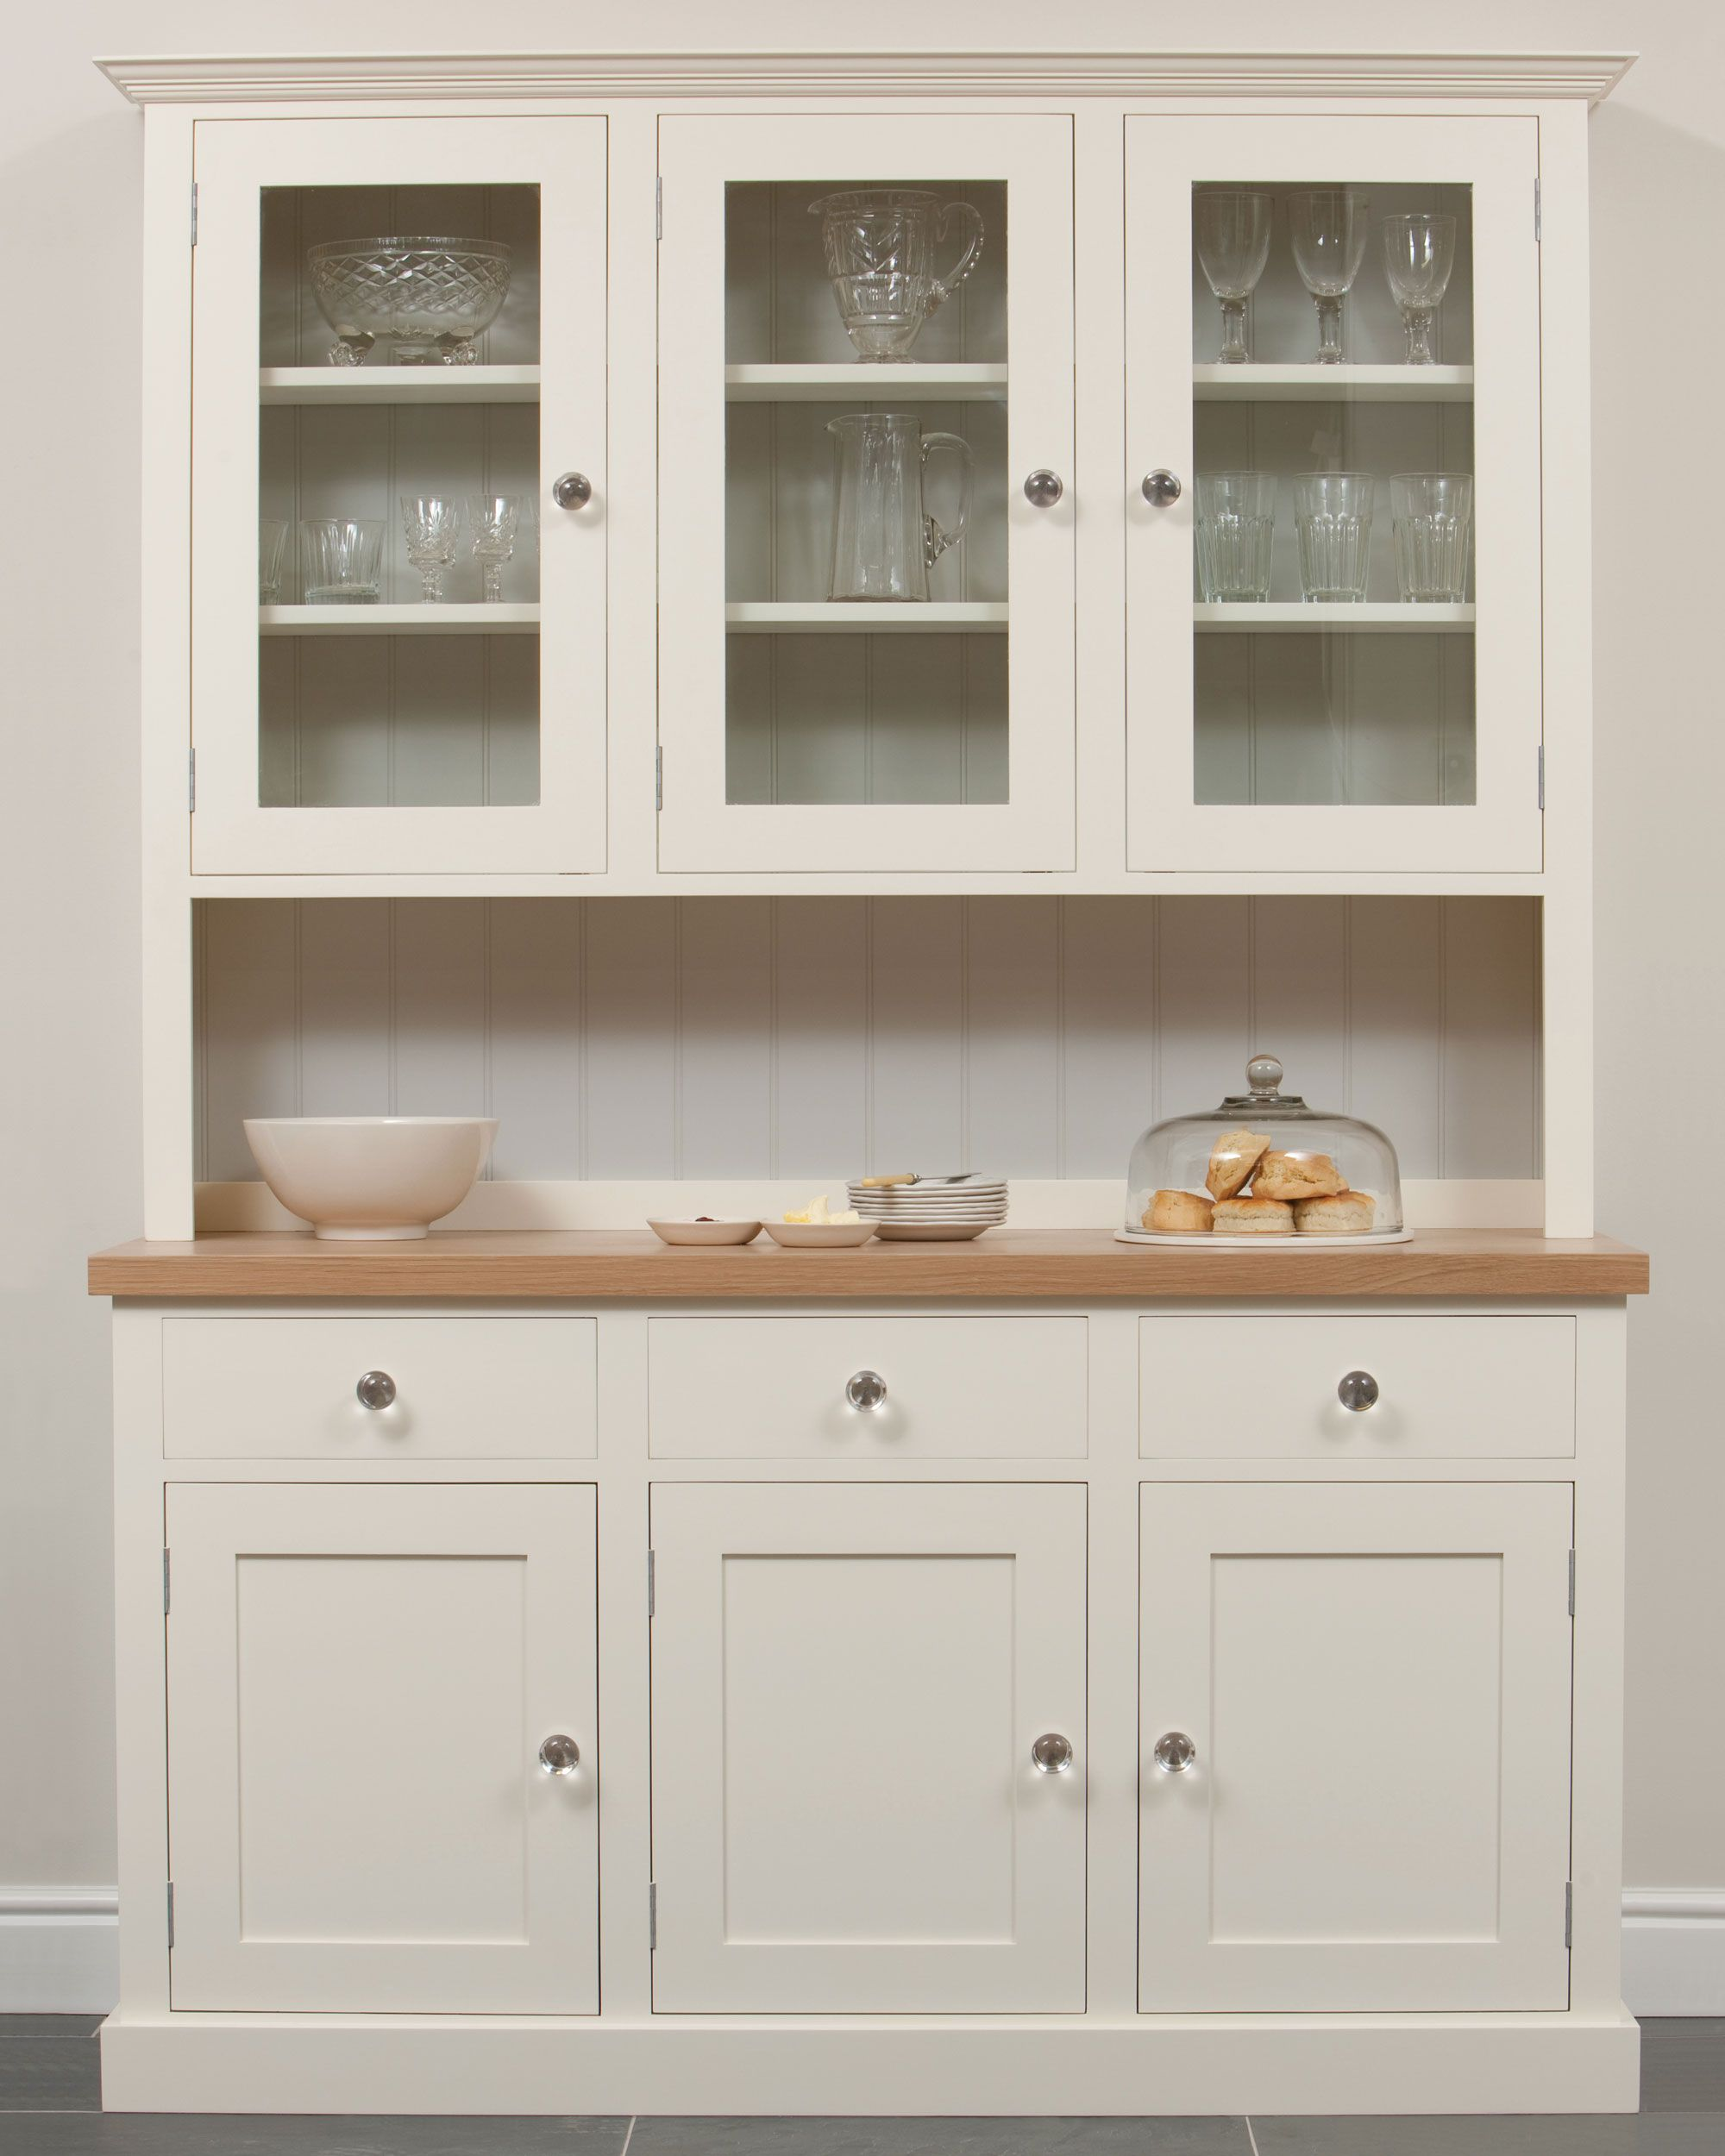 The Kitchen Dresser Company Is A Family Run British Business Designing And Making Finest Dressers In Uk